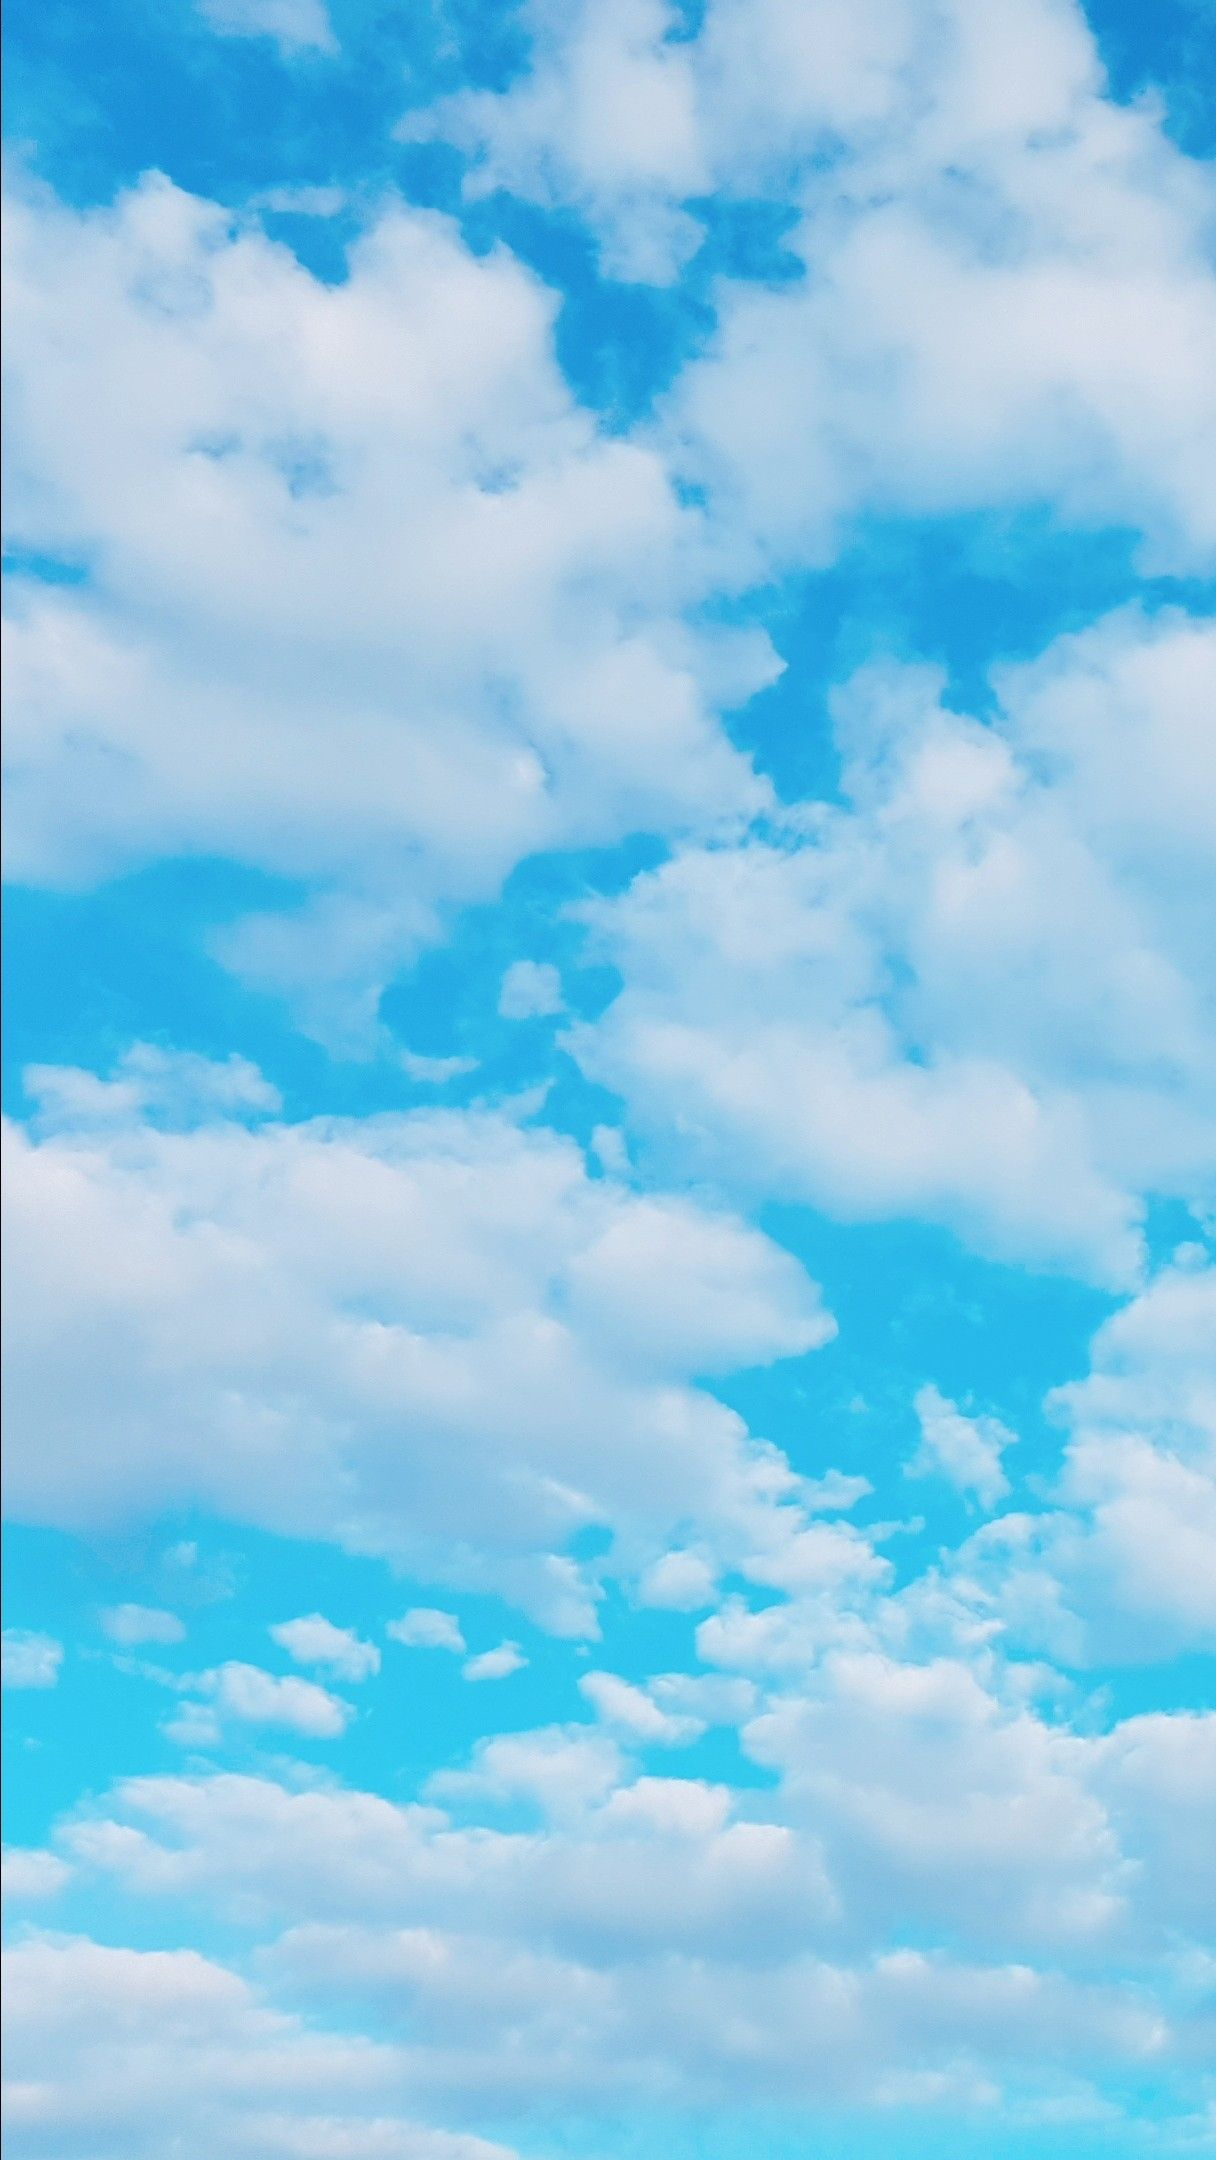 Blue Sky Aesthetic Wallpapers - Wallpaper Cave